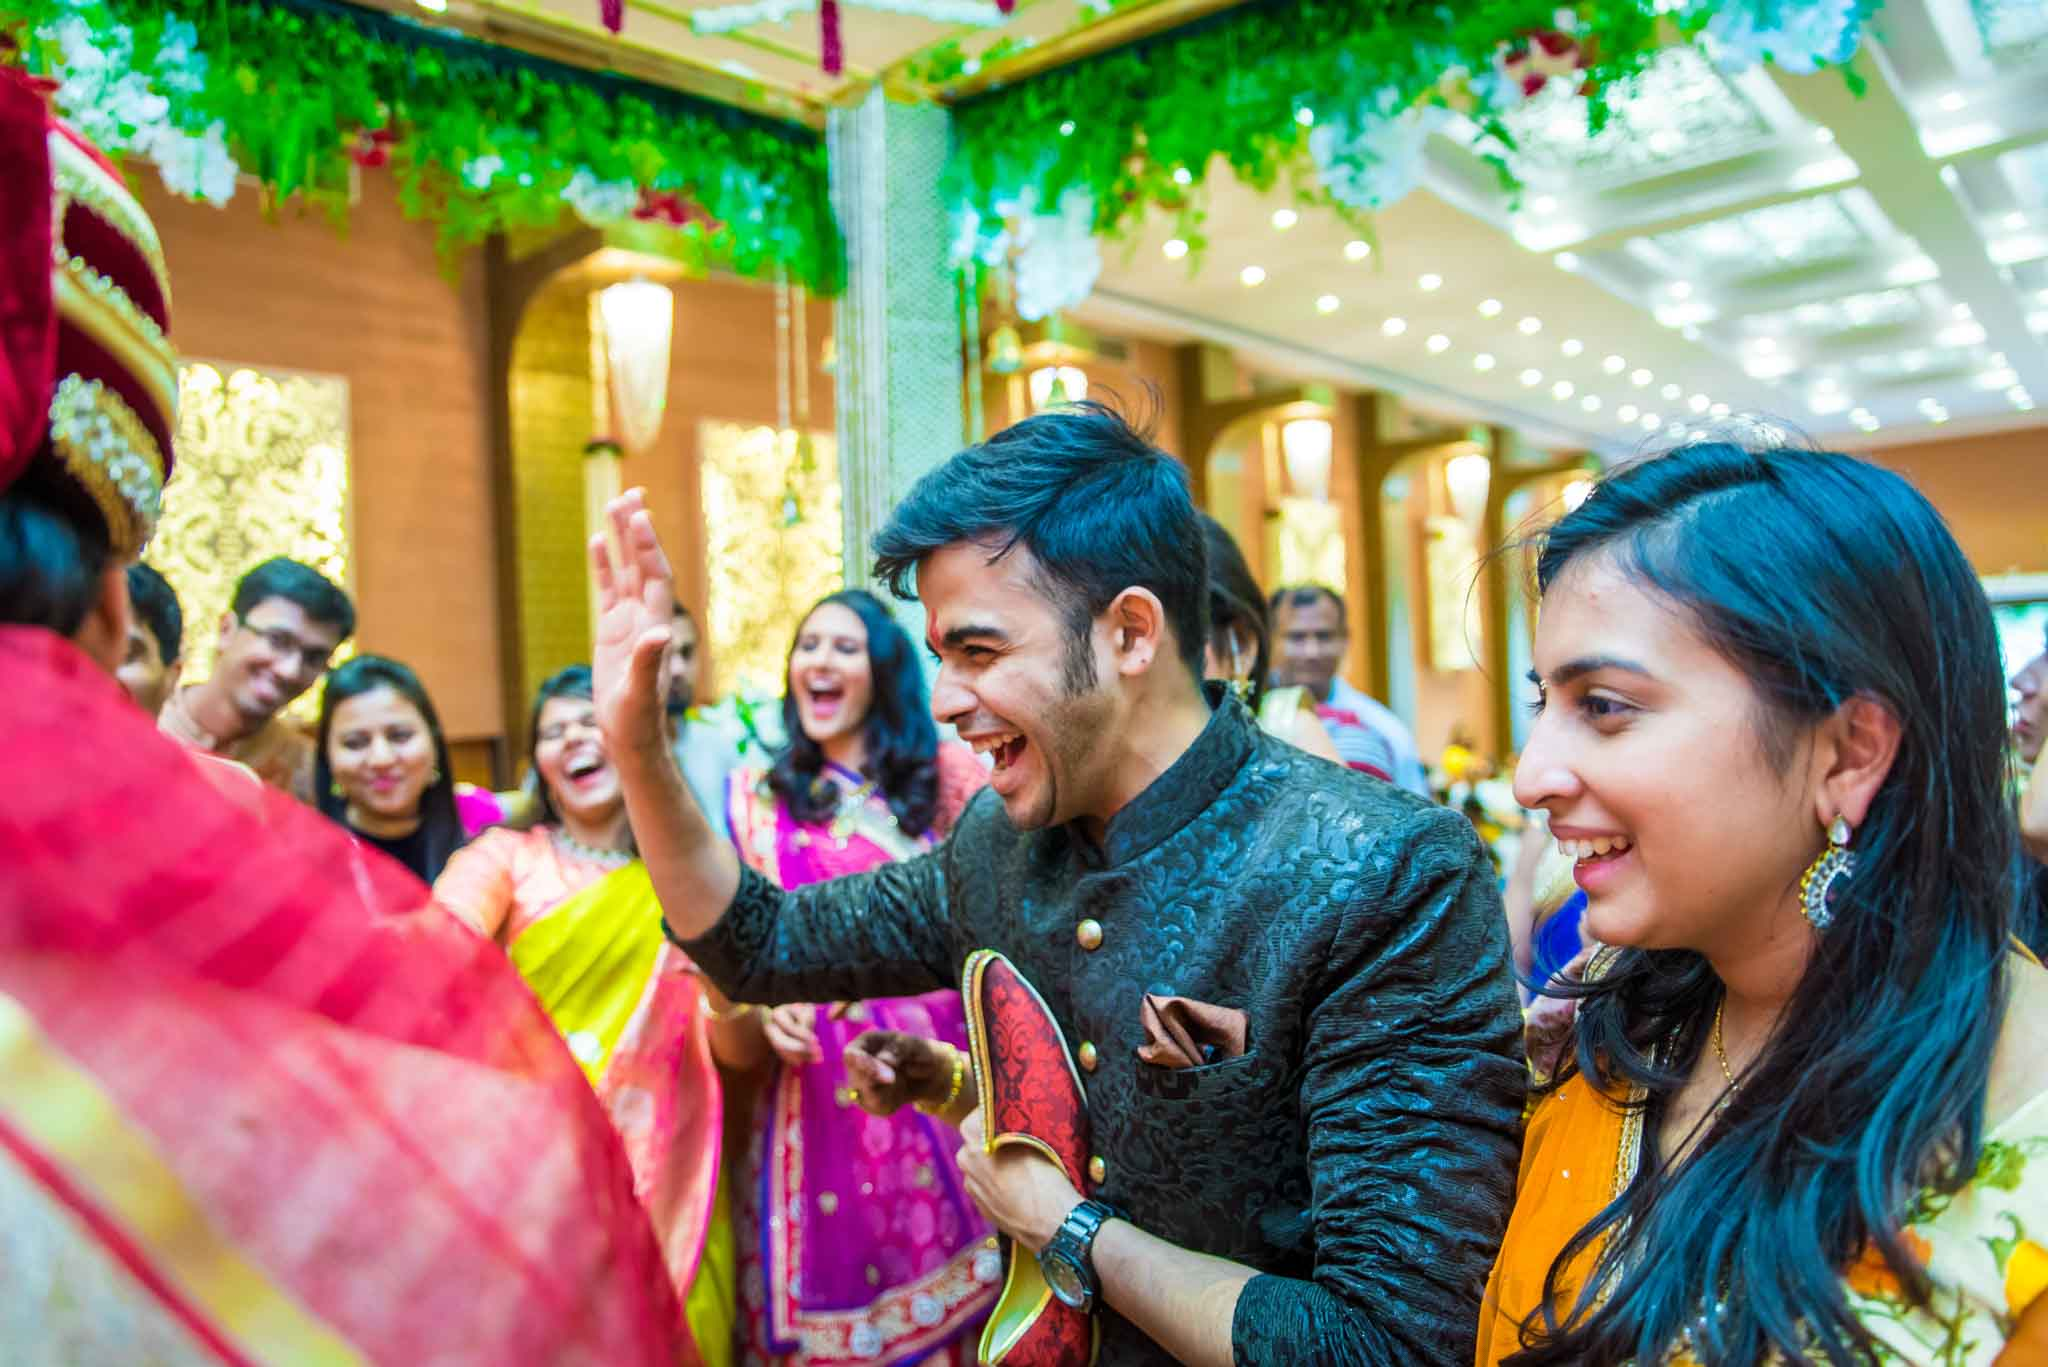 mumbai-candid-photography-wedding-whatknot-kamal-amrohi-studios-48